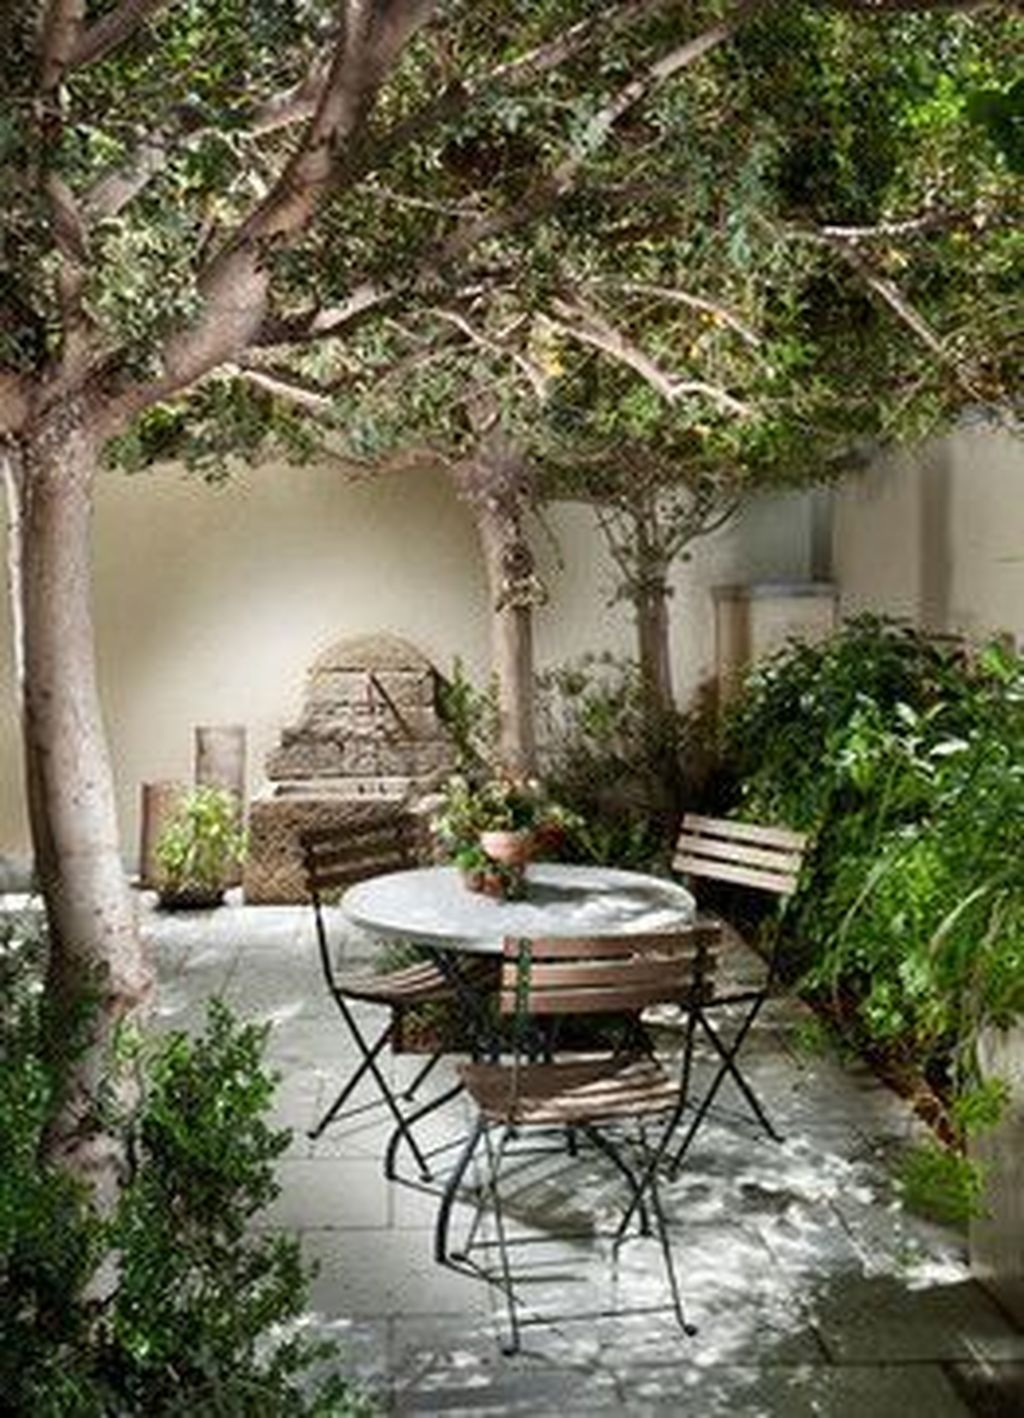 30 Latest Small Courtyard Garden Design Ideas For Your House To Try Courtyard Gardens Design Indoor Courtyard Front Courtyard